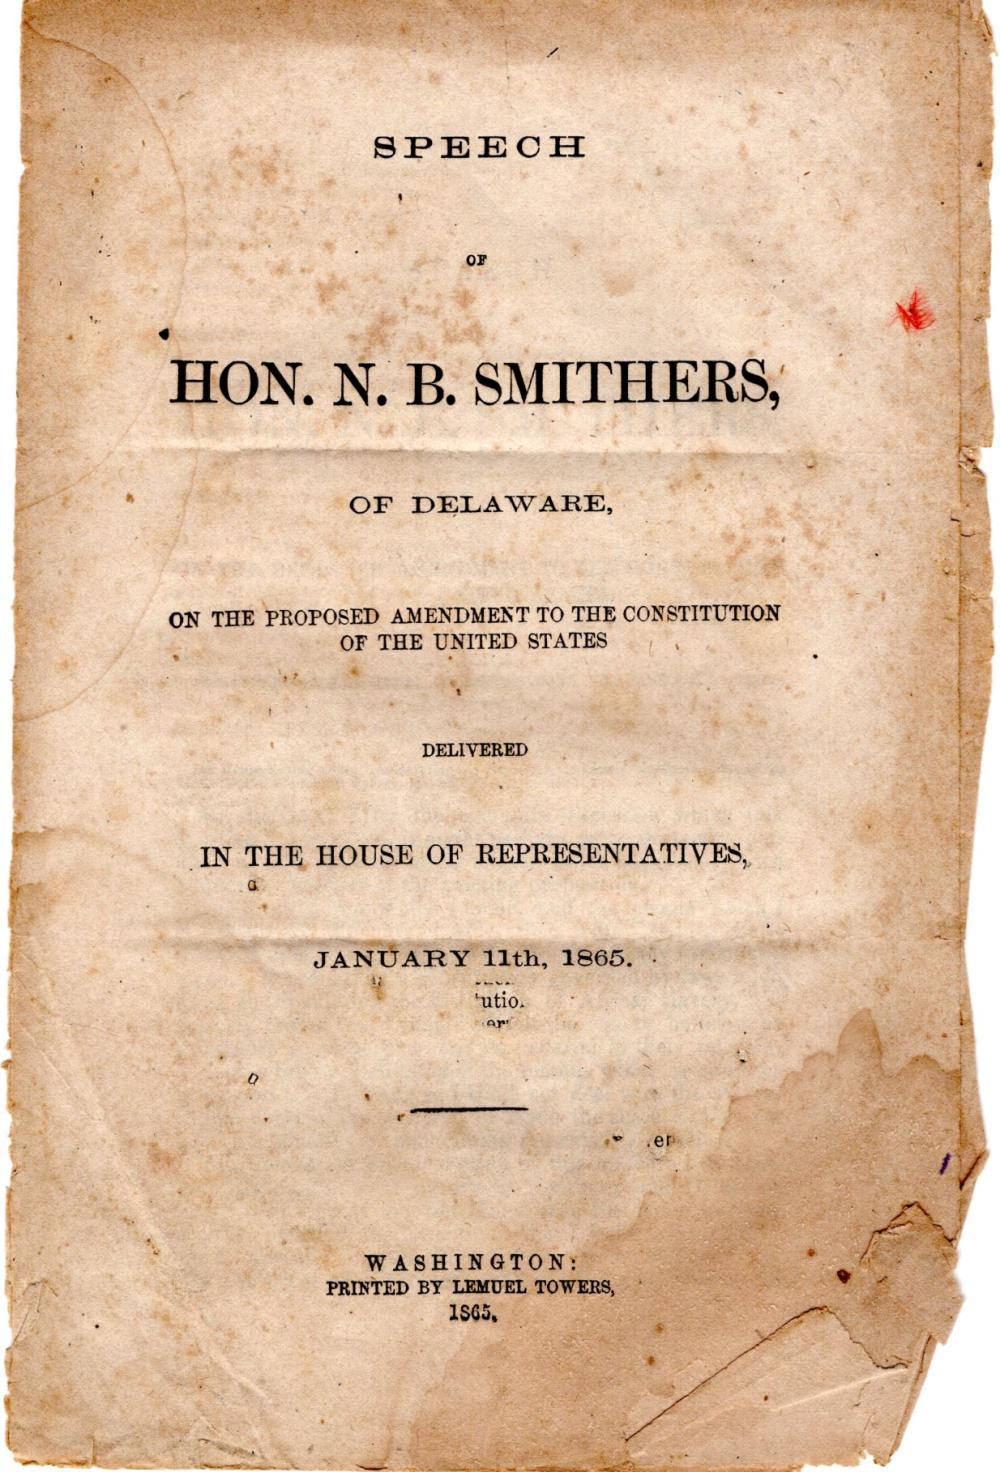 Speech in support of the 13th Amendment, 1865